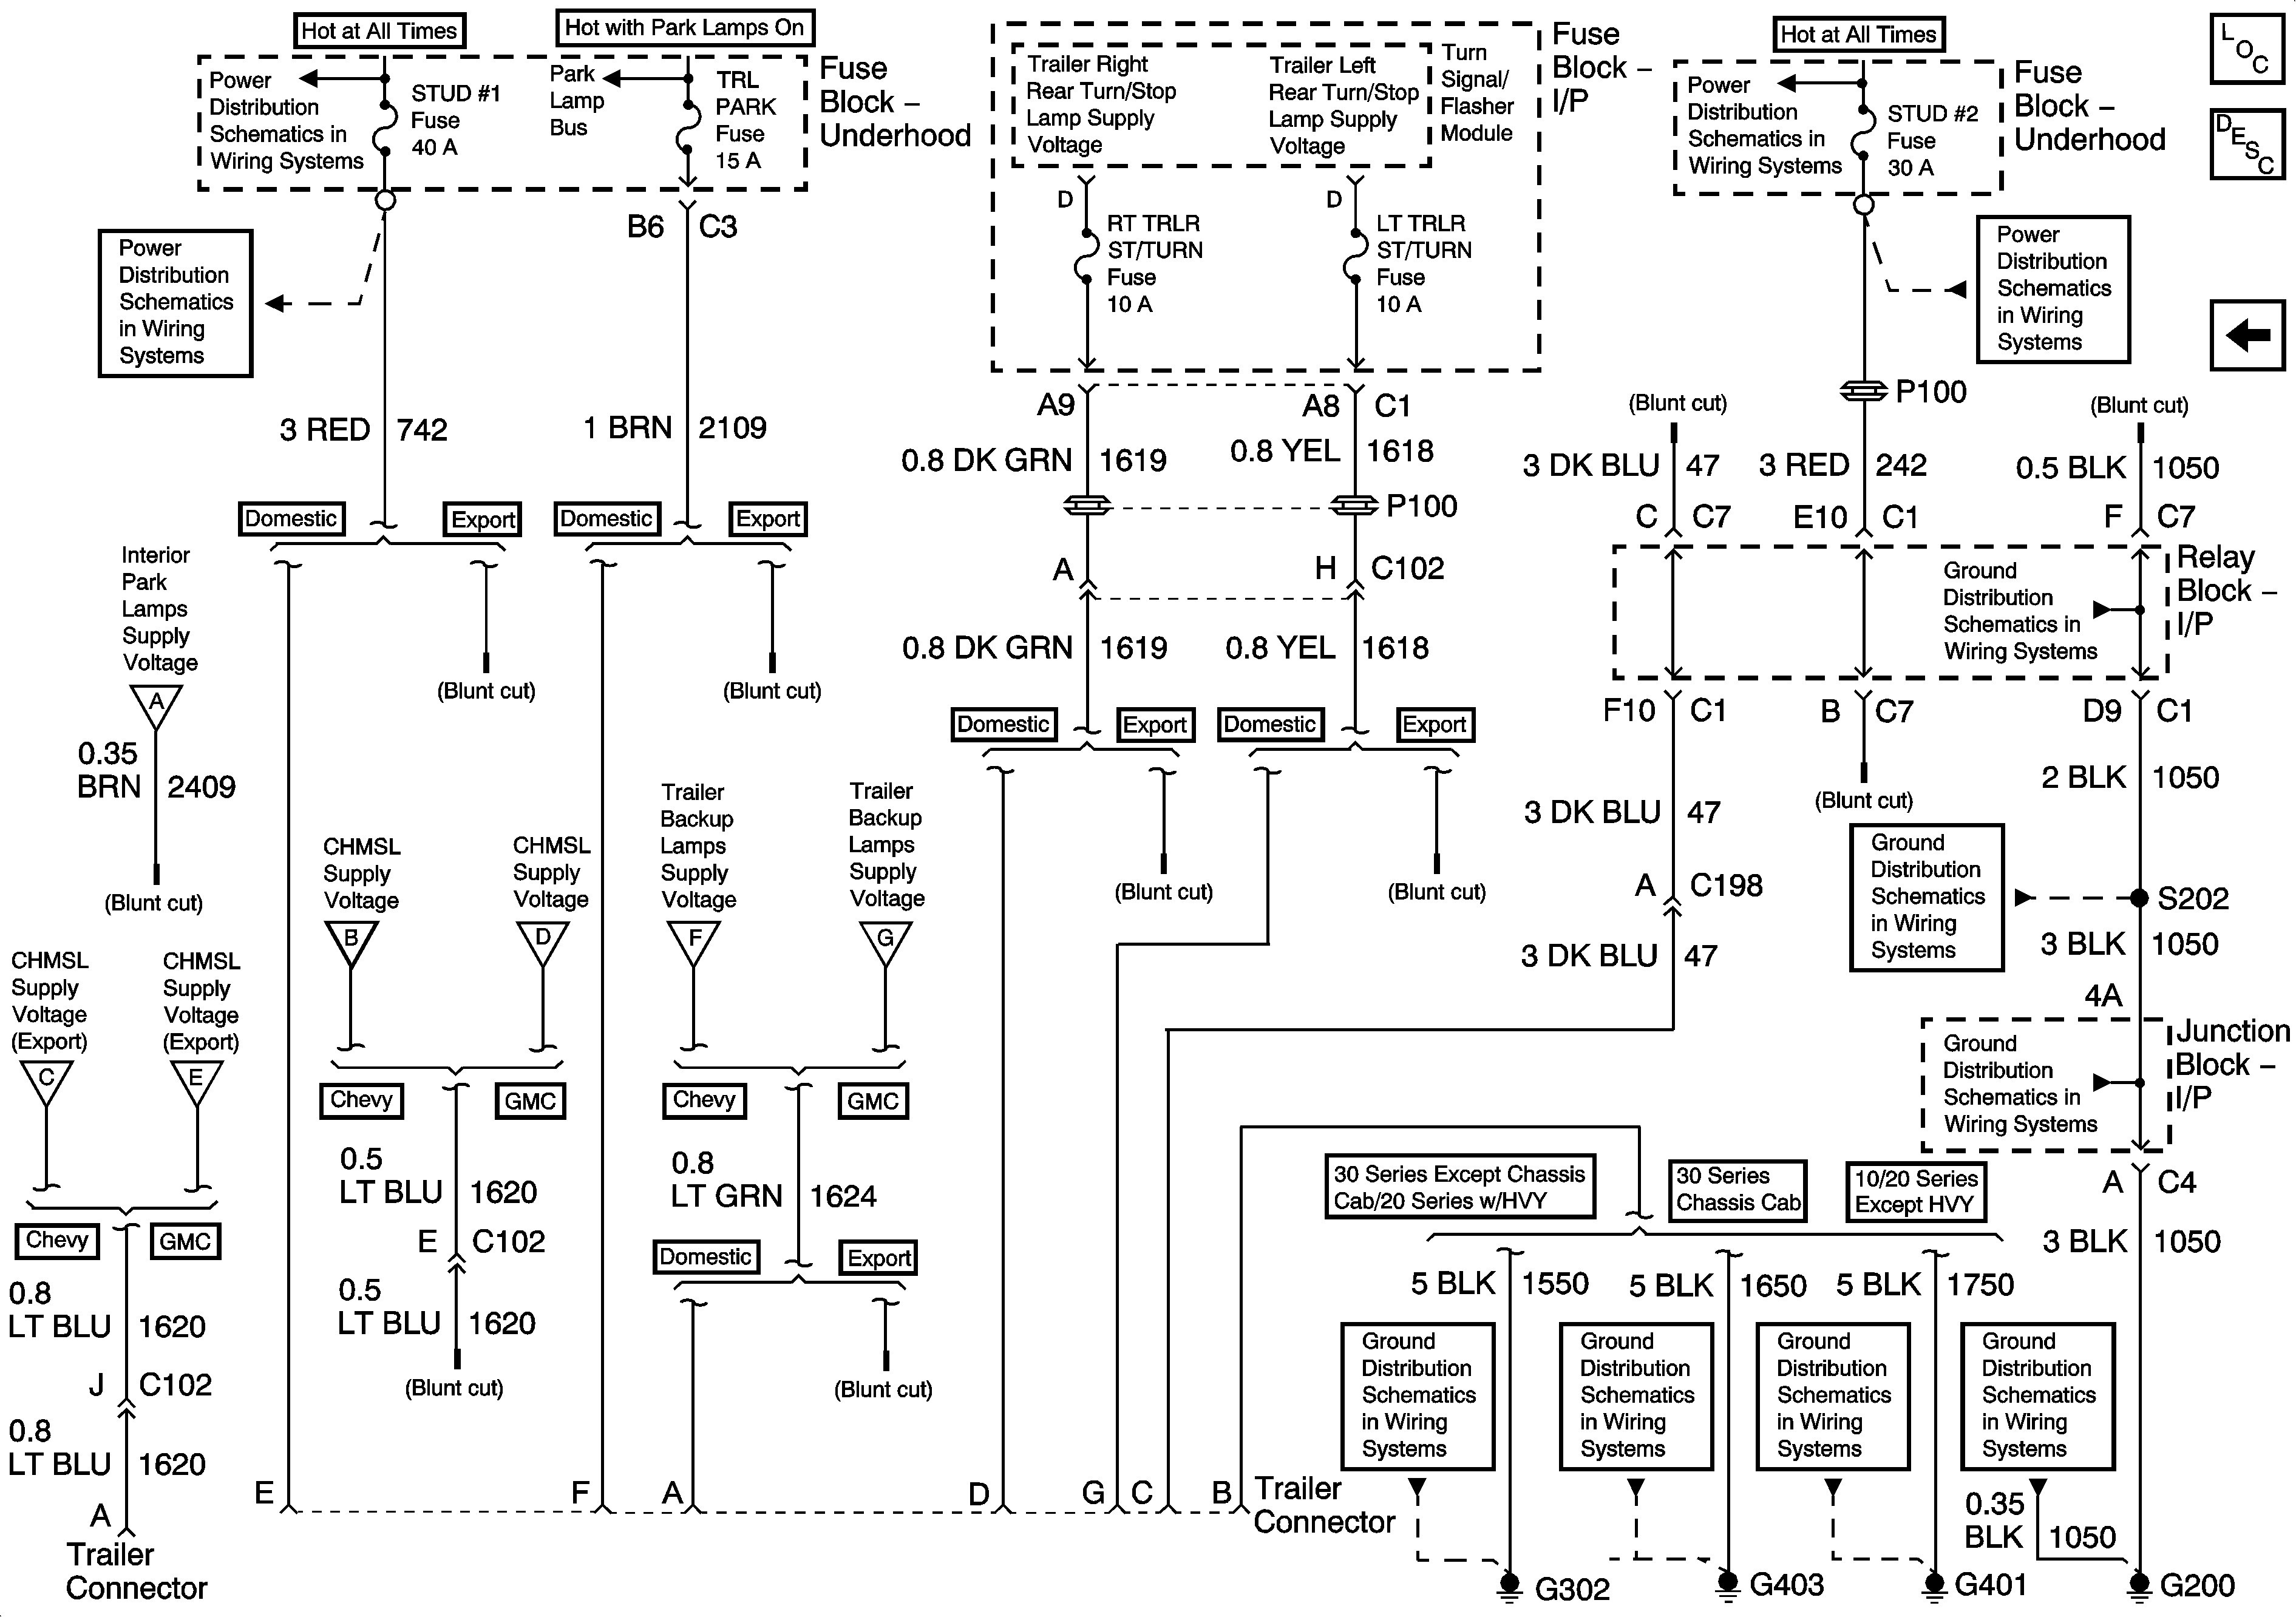 05 Silverado Trailer Wiring Diagram Source 13 5 | Hastalavista - 05 Silverado Trailer Wiring Diagram